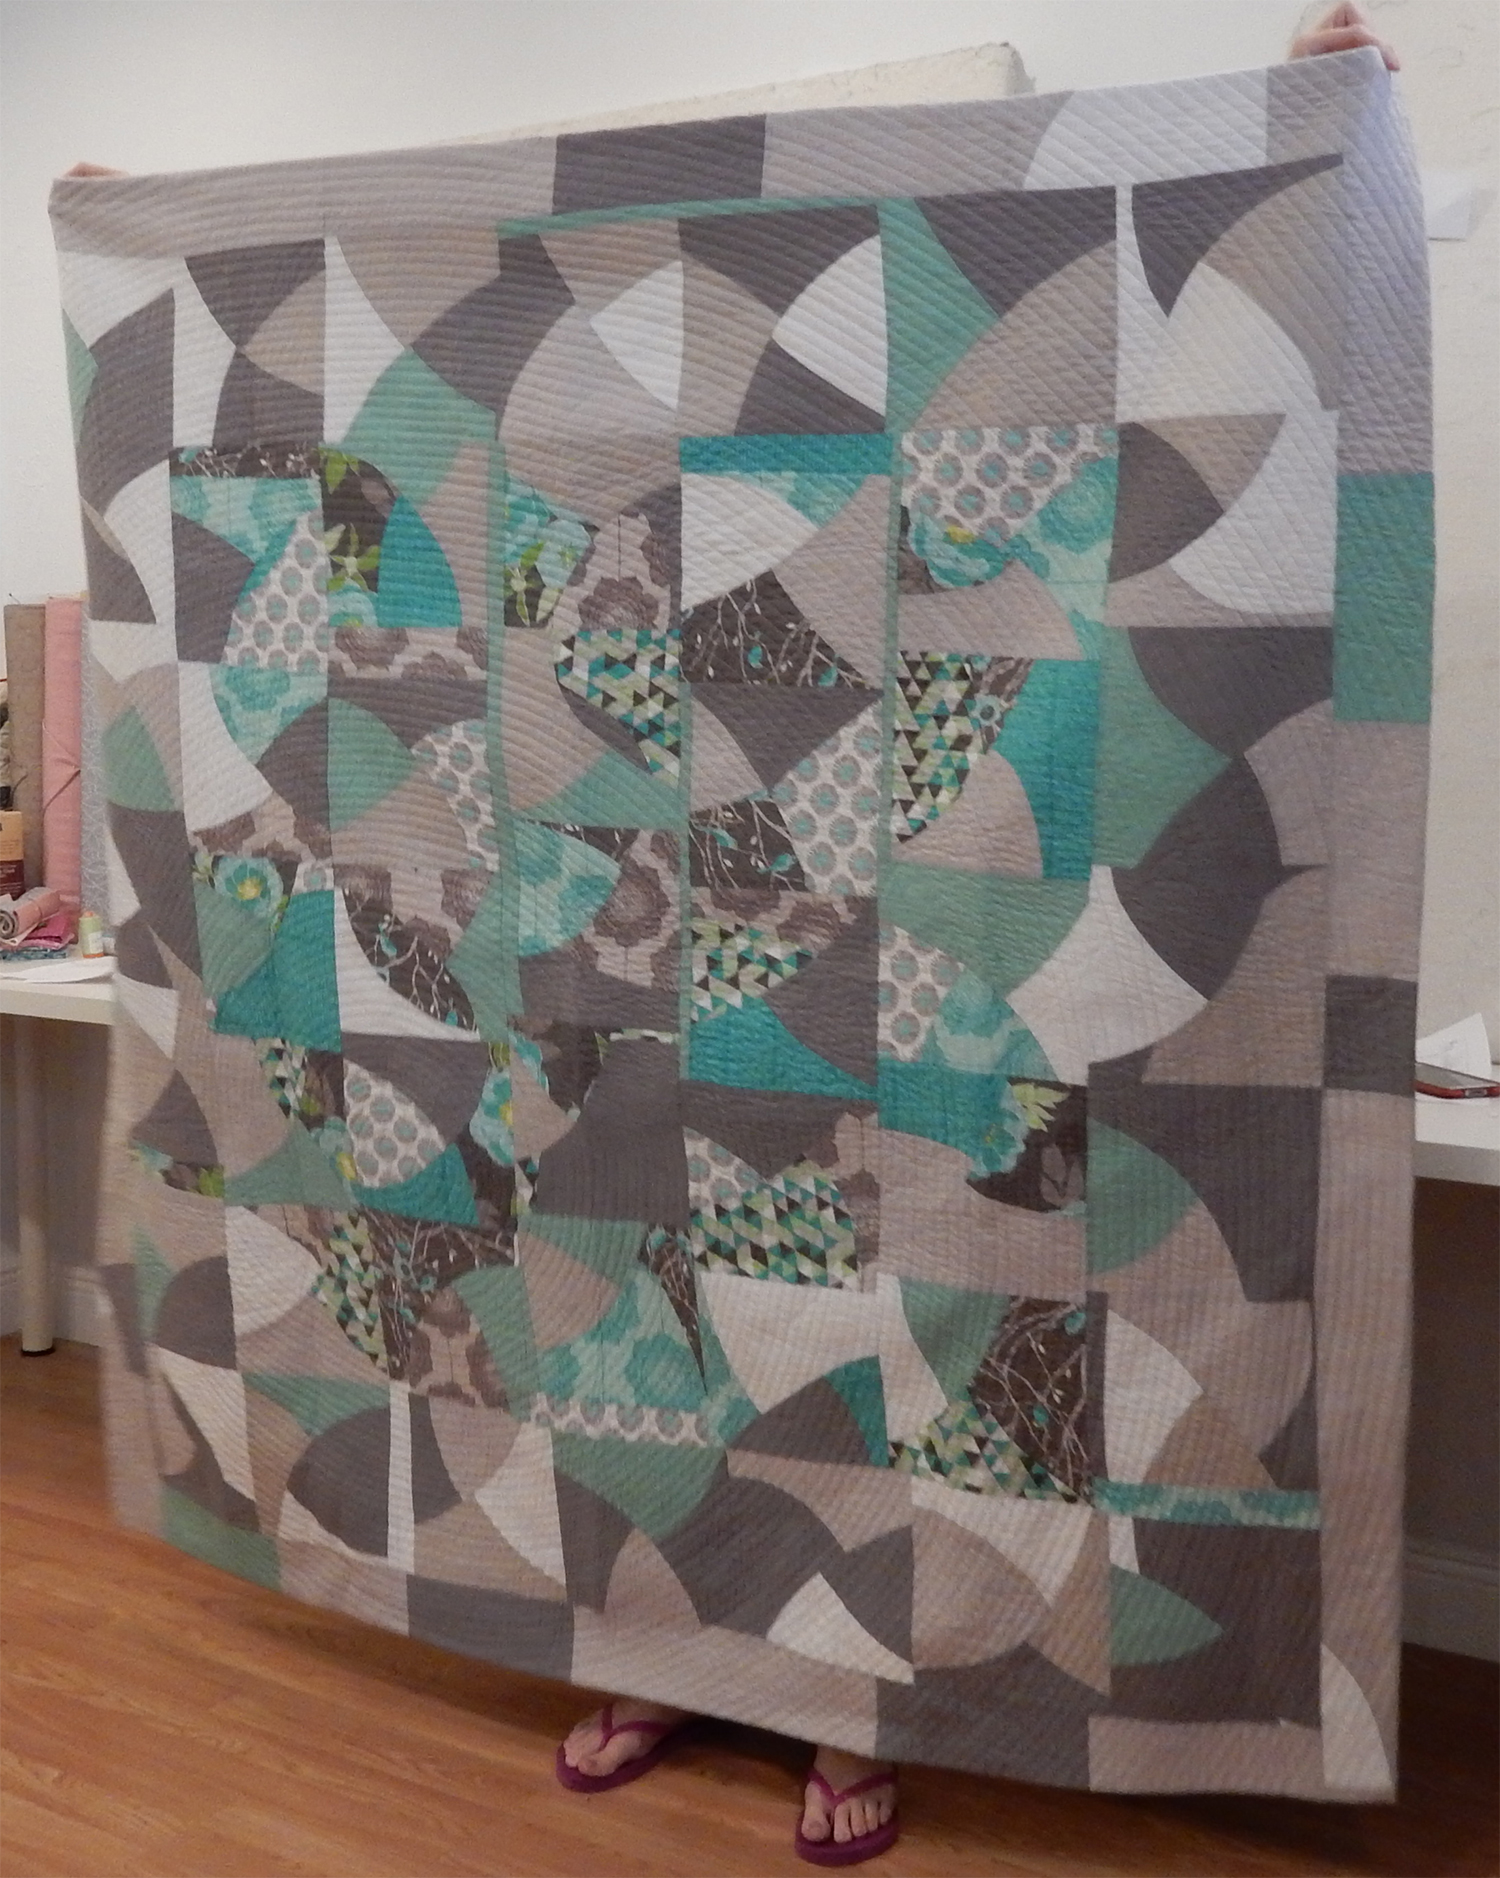 Kate Yates brought in her finished quilt from the MQG Riley Blake Challenge, from Sherri Lynn Wood's Improv Handbook